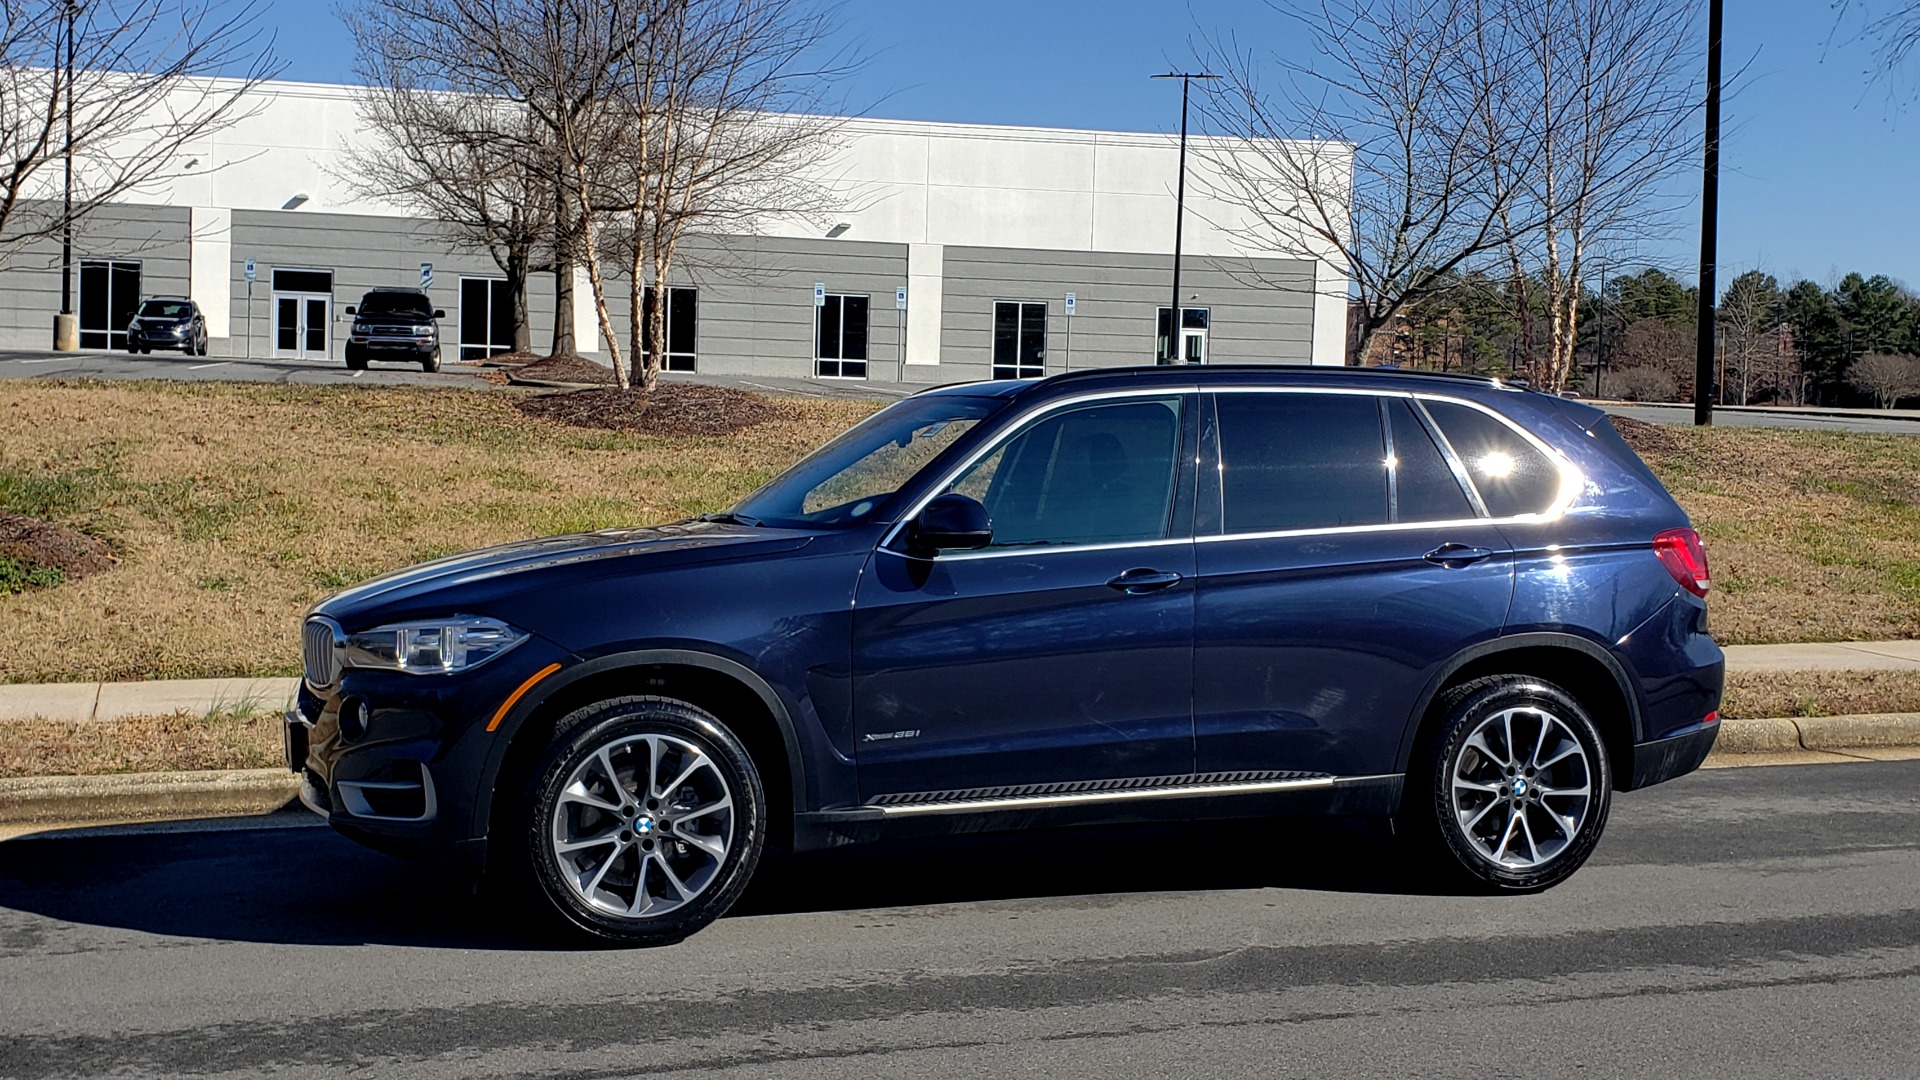 Used 2015 BMW X5 XDRIVE35I PREMIUM / NAV / XLINE / CLD WTHR / DRVR ASST / REARVIEW for sale Sold at Formula Imports in Charlotte NC 28227 2